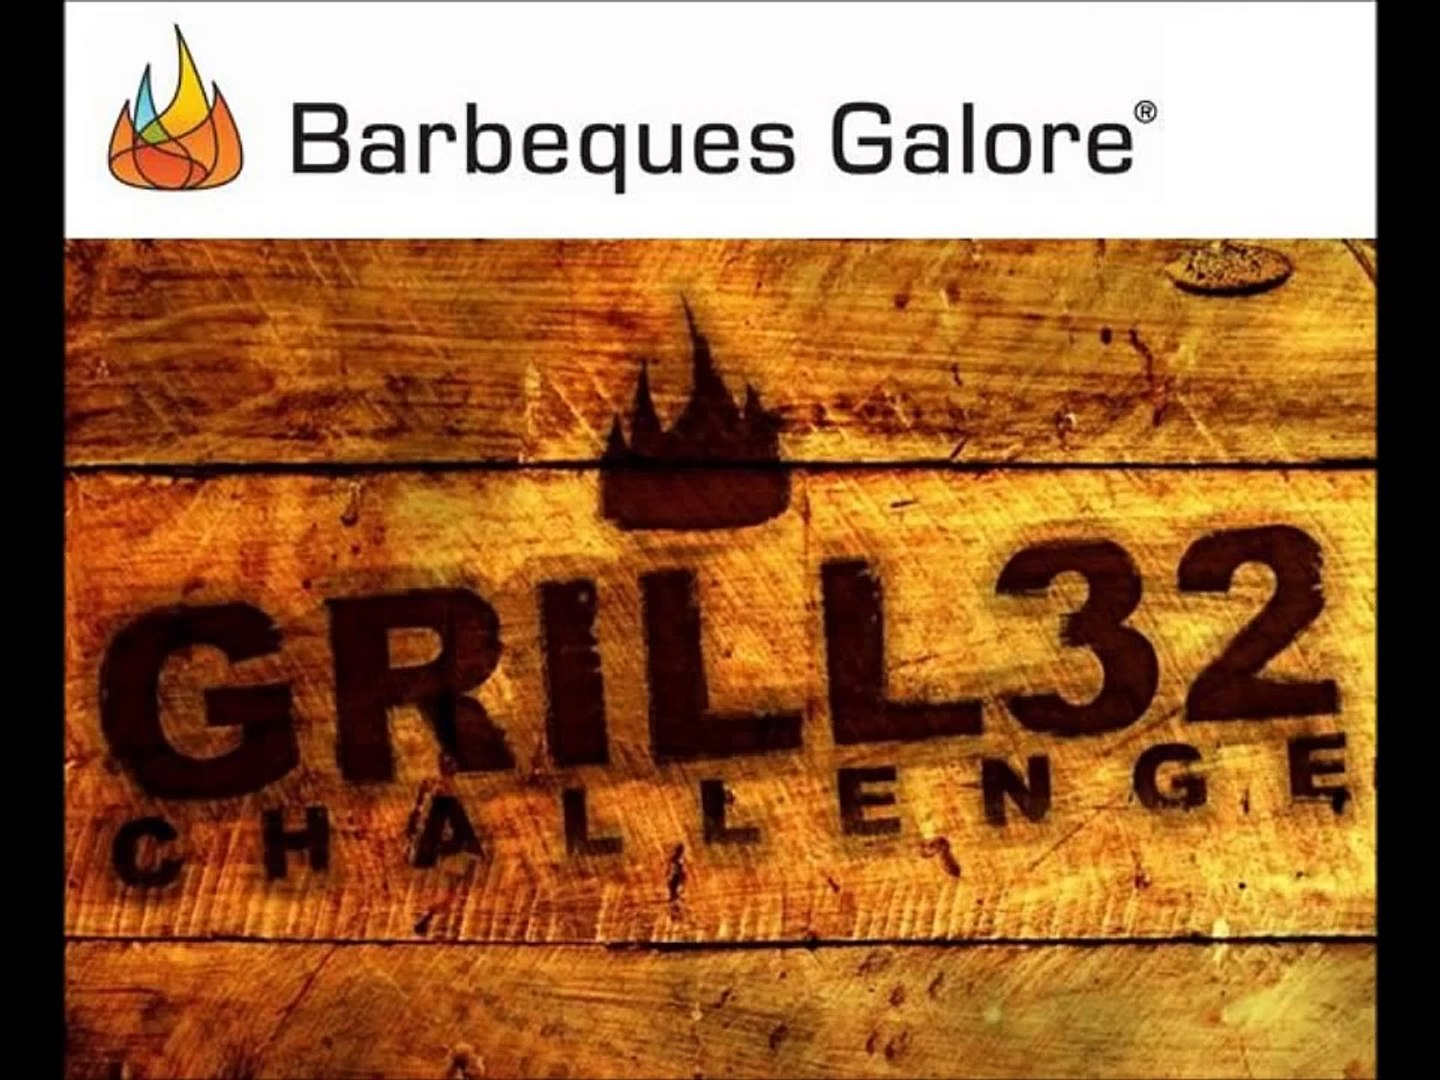 Barbeques Galore Grill32 Challenge Week 20, Day 1 - Sirloin - Mahi Mahi, salmon burgers, and chicken